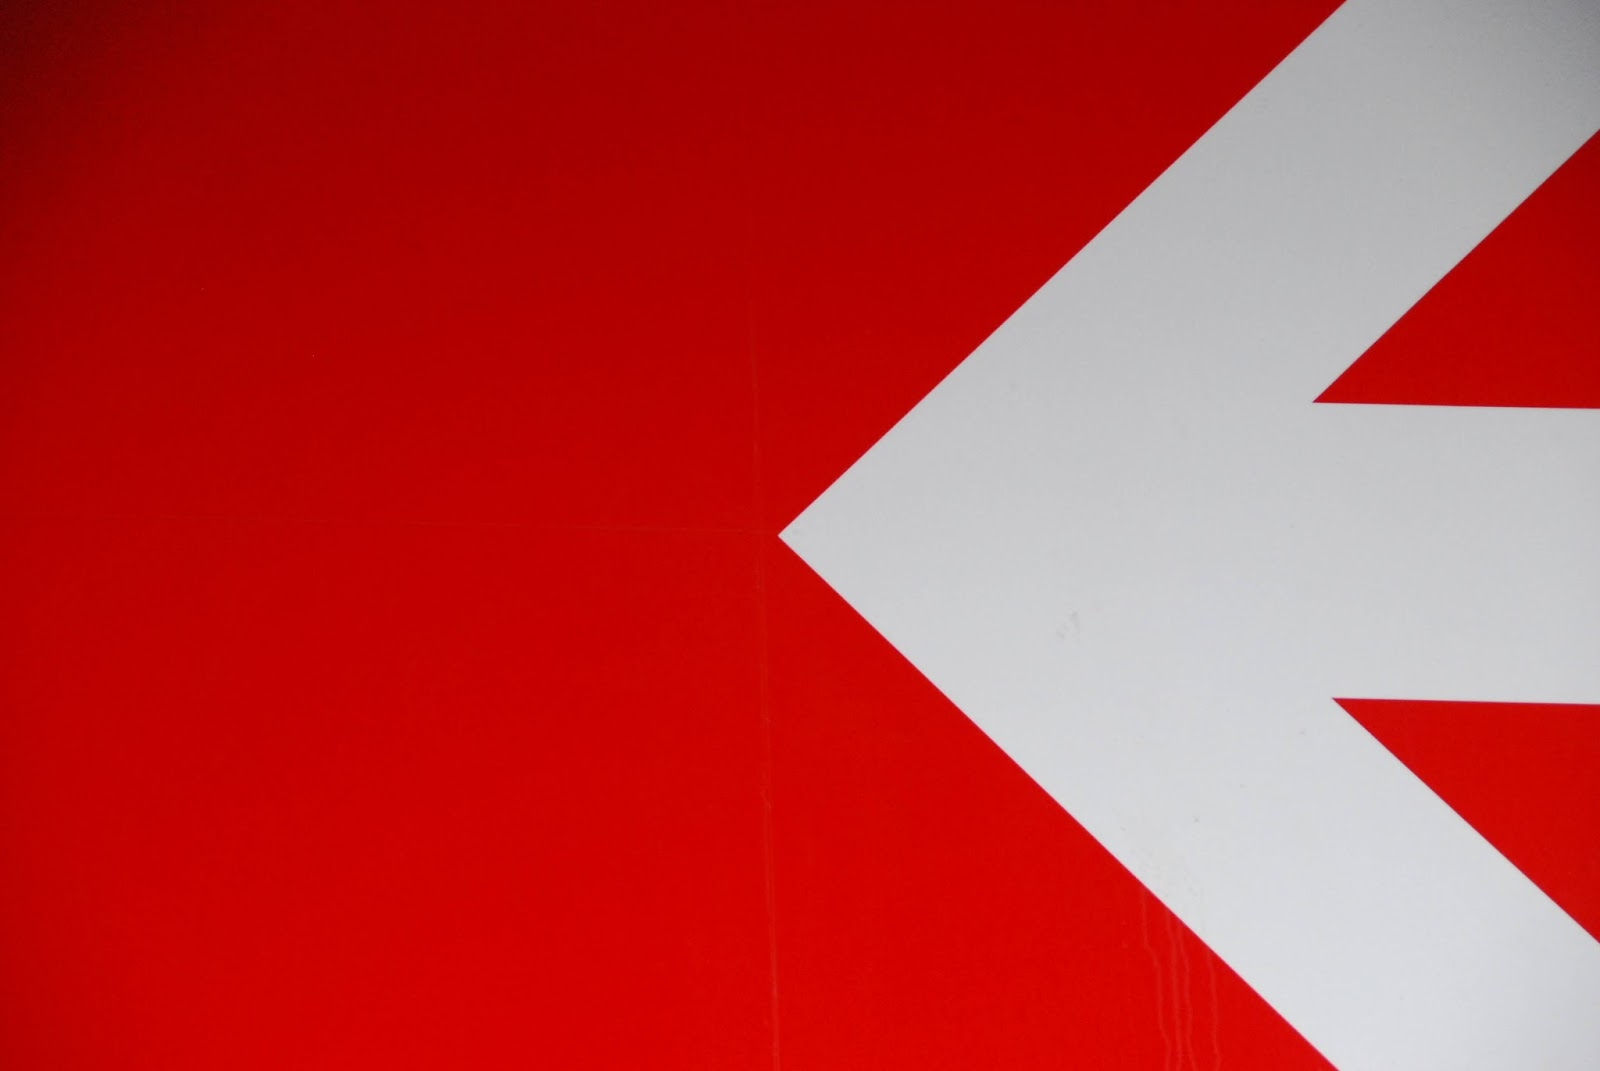 Red and White Wallpapers